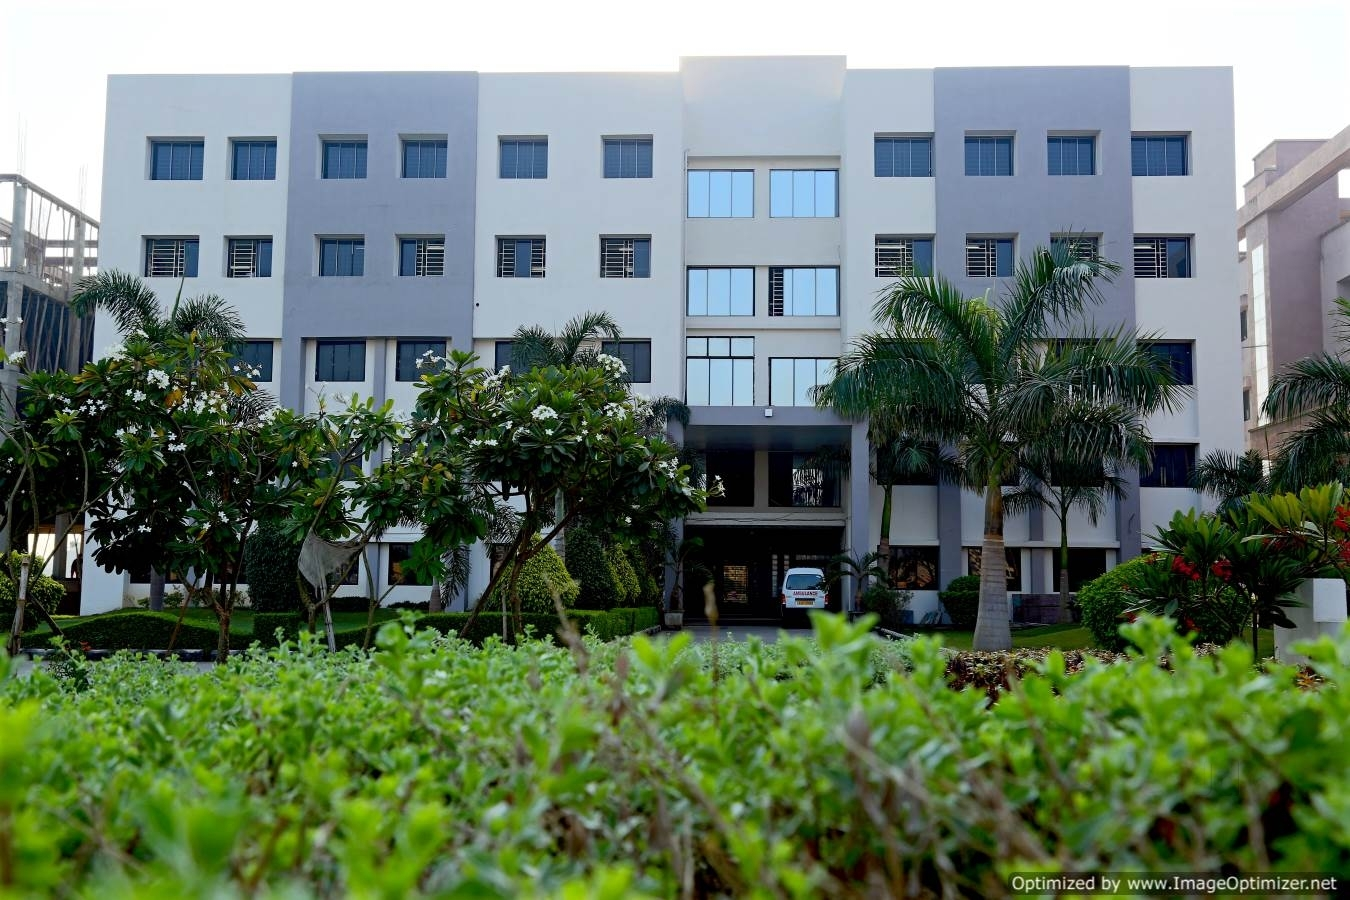 S S Agrawal College Of Nursing Training And Research Center, Navsari Image